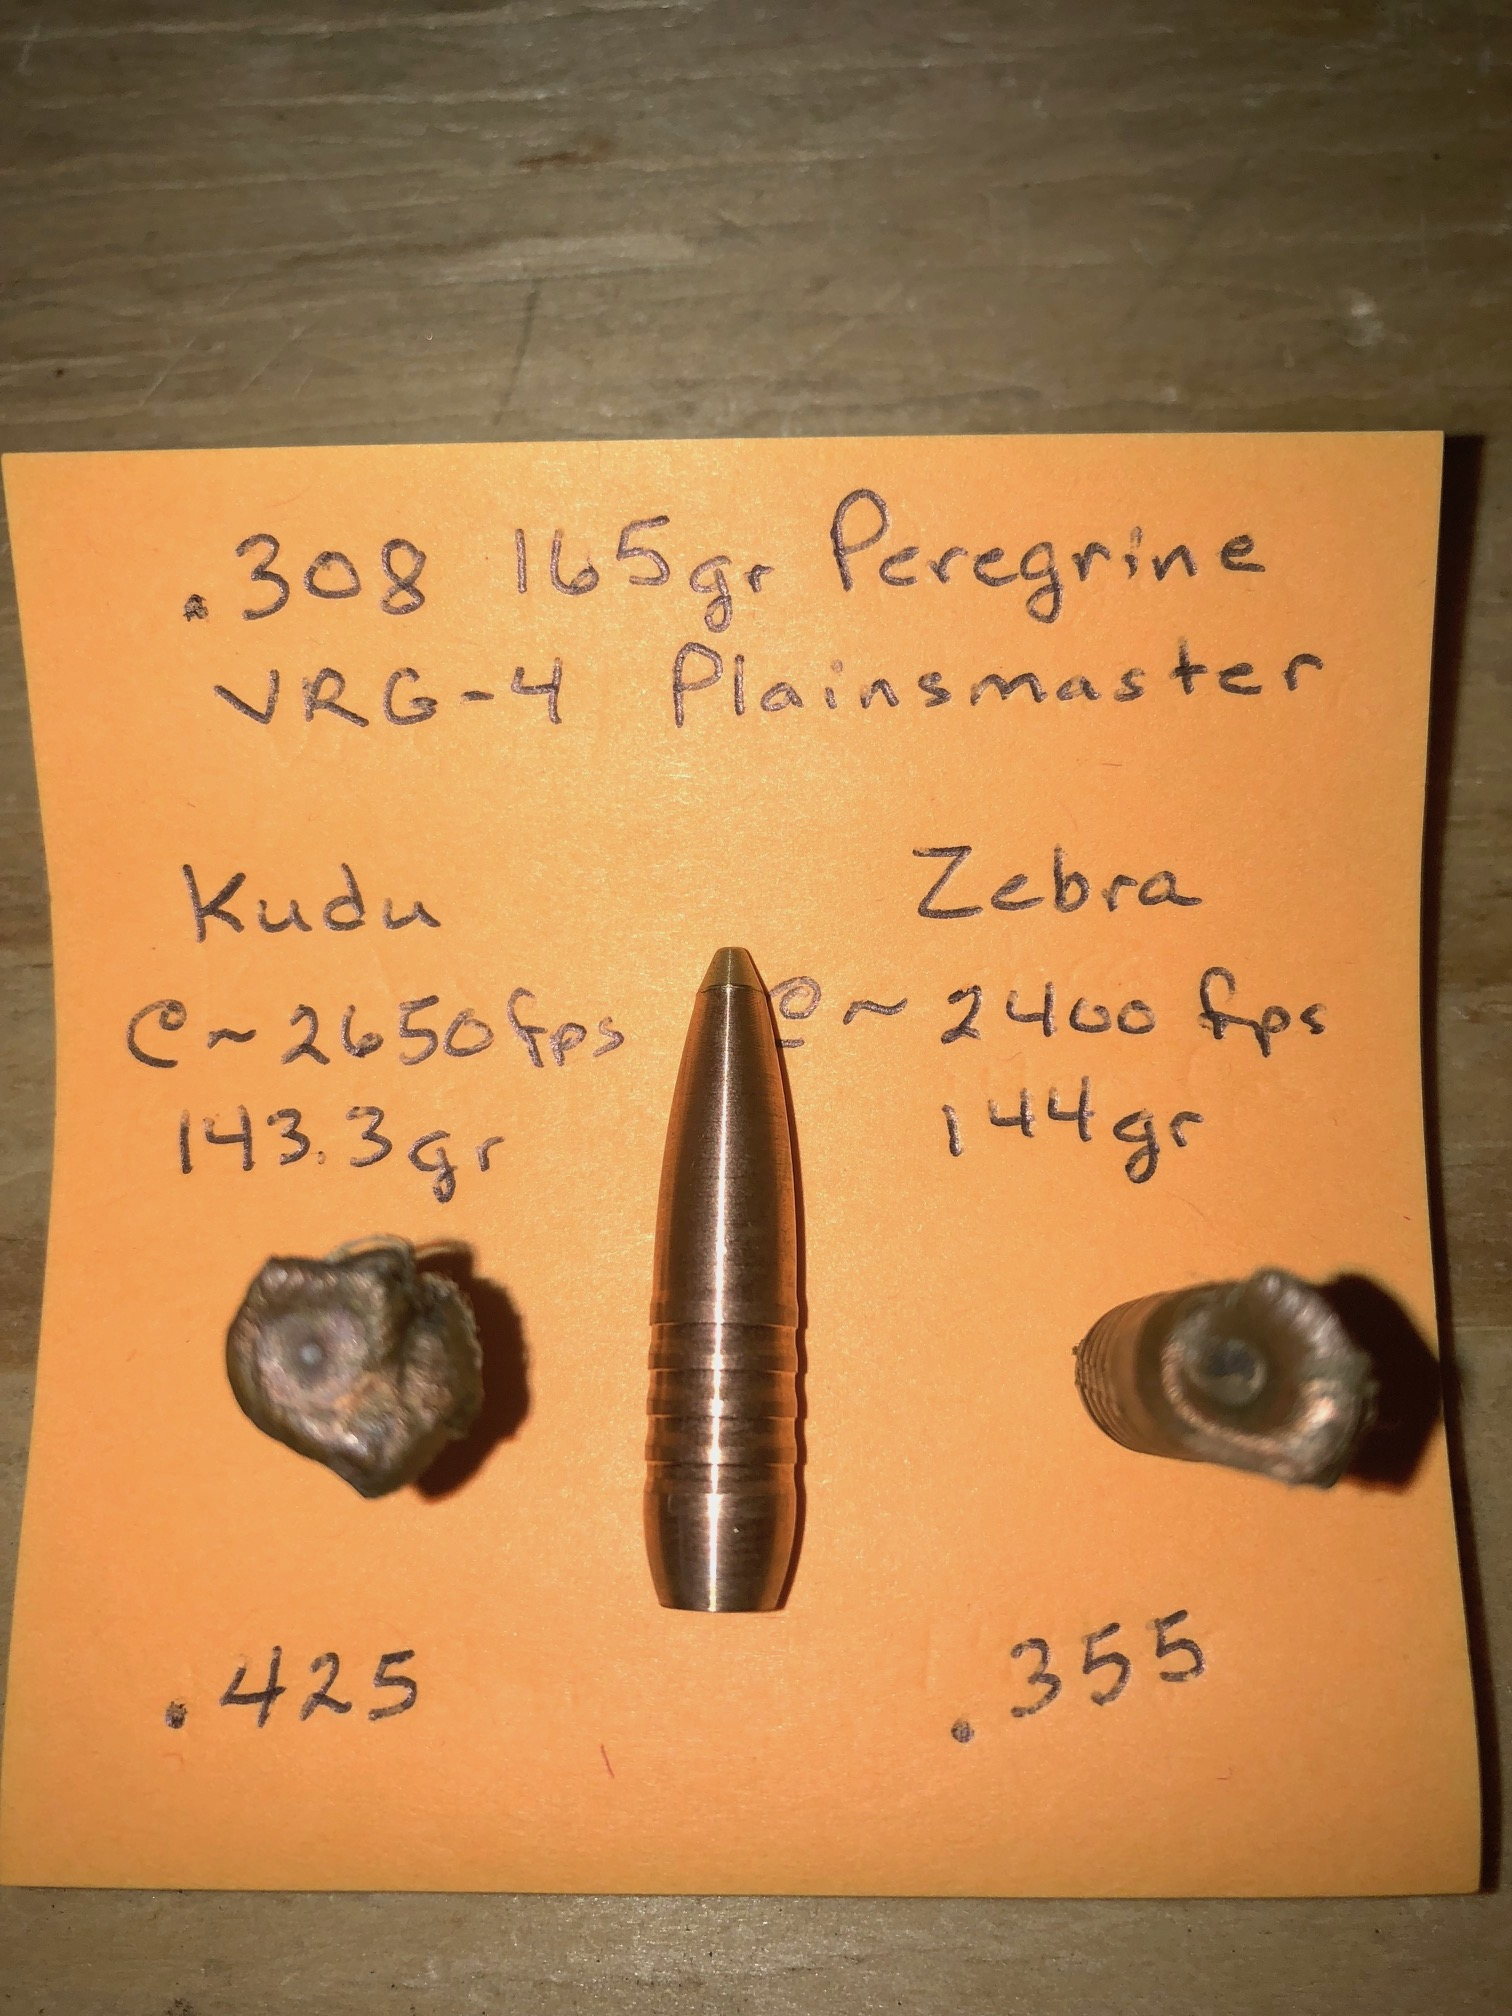 165gr Peregrine top view.jpg